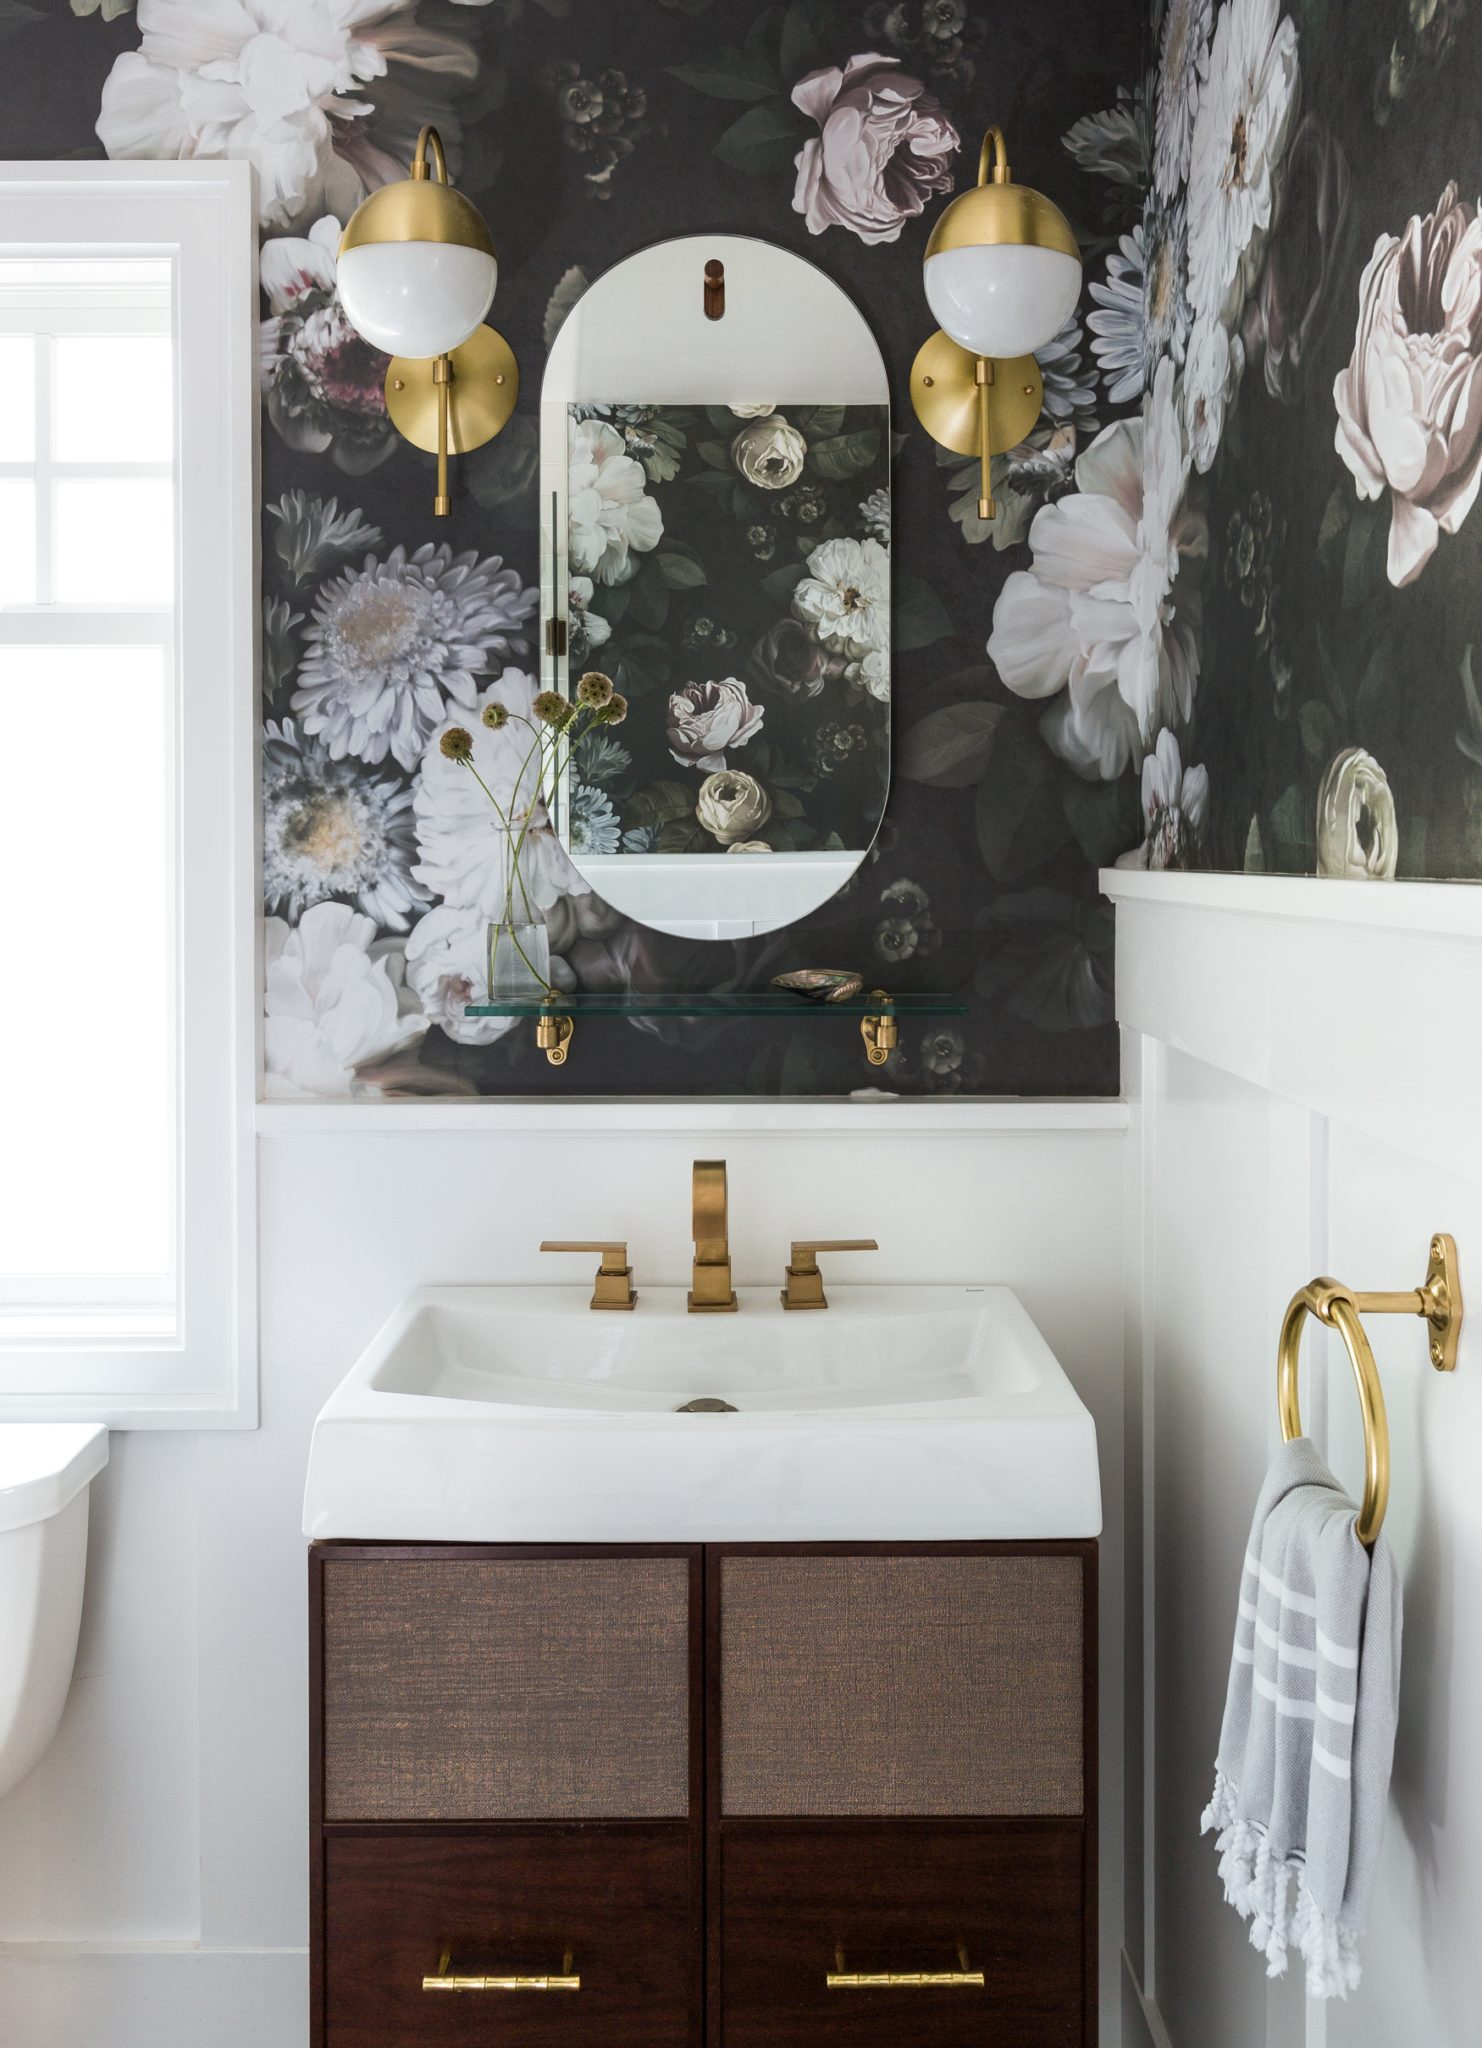 In the powder room, a dark floral wallpaper featuring painterly blooms is from Ellie Cashman Design. The custom vanity was built by J Wanamaker Cabinetry, and the mirror is from Blu Dot.